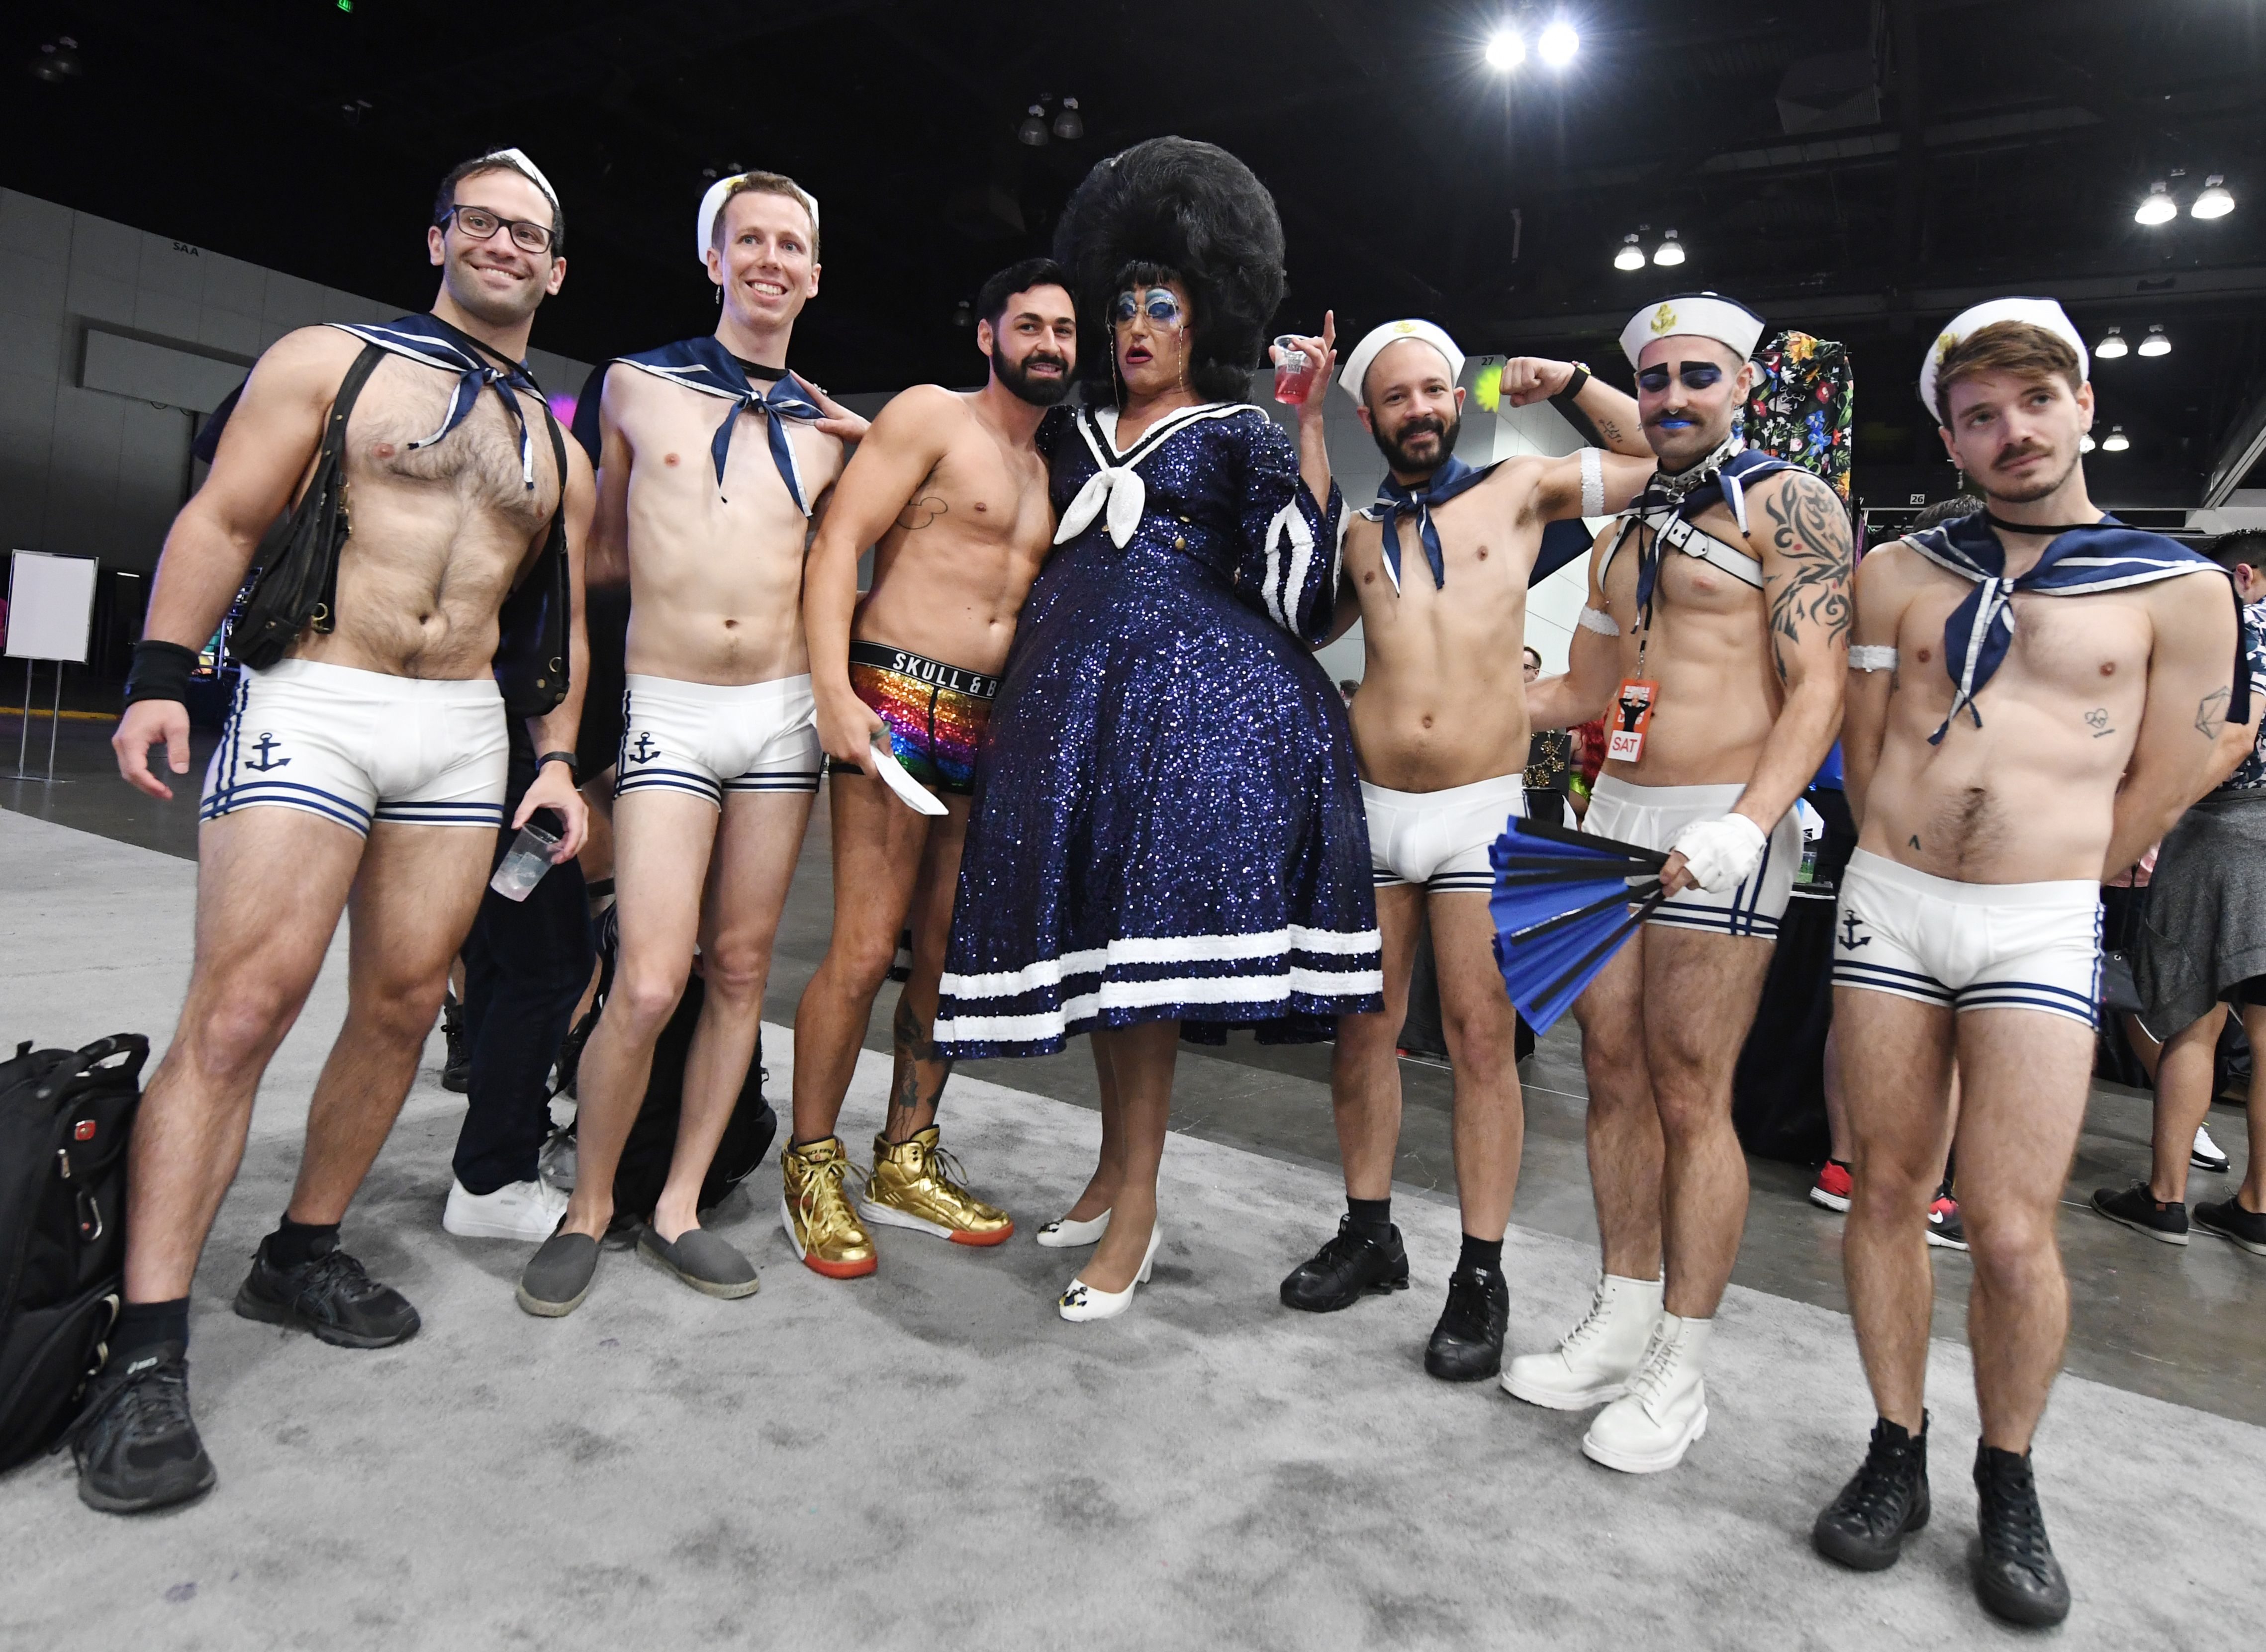 """Drag Queens and friends attend the three day RuPaul's DragCon, which is billed as the """"first convention celebrating drag, queer culture and  self-expression"""" ."""